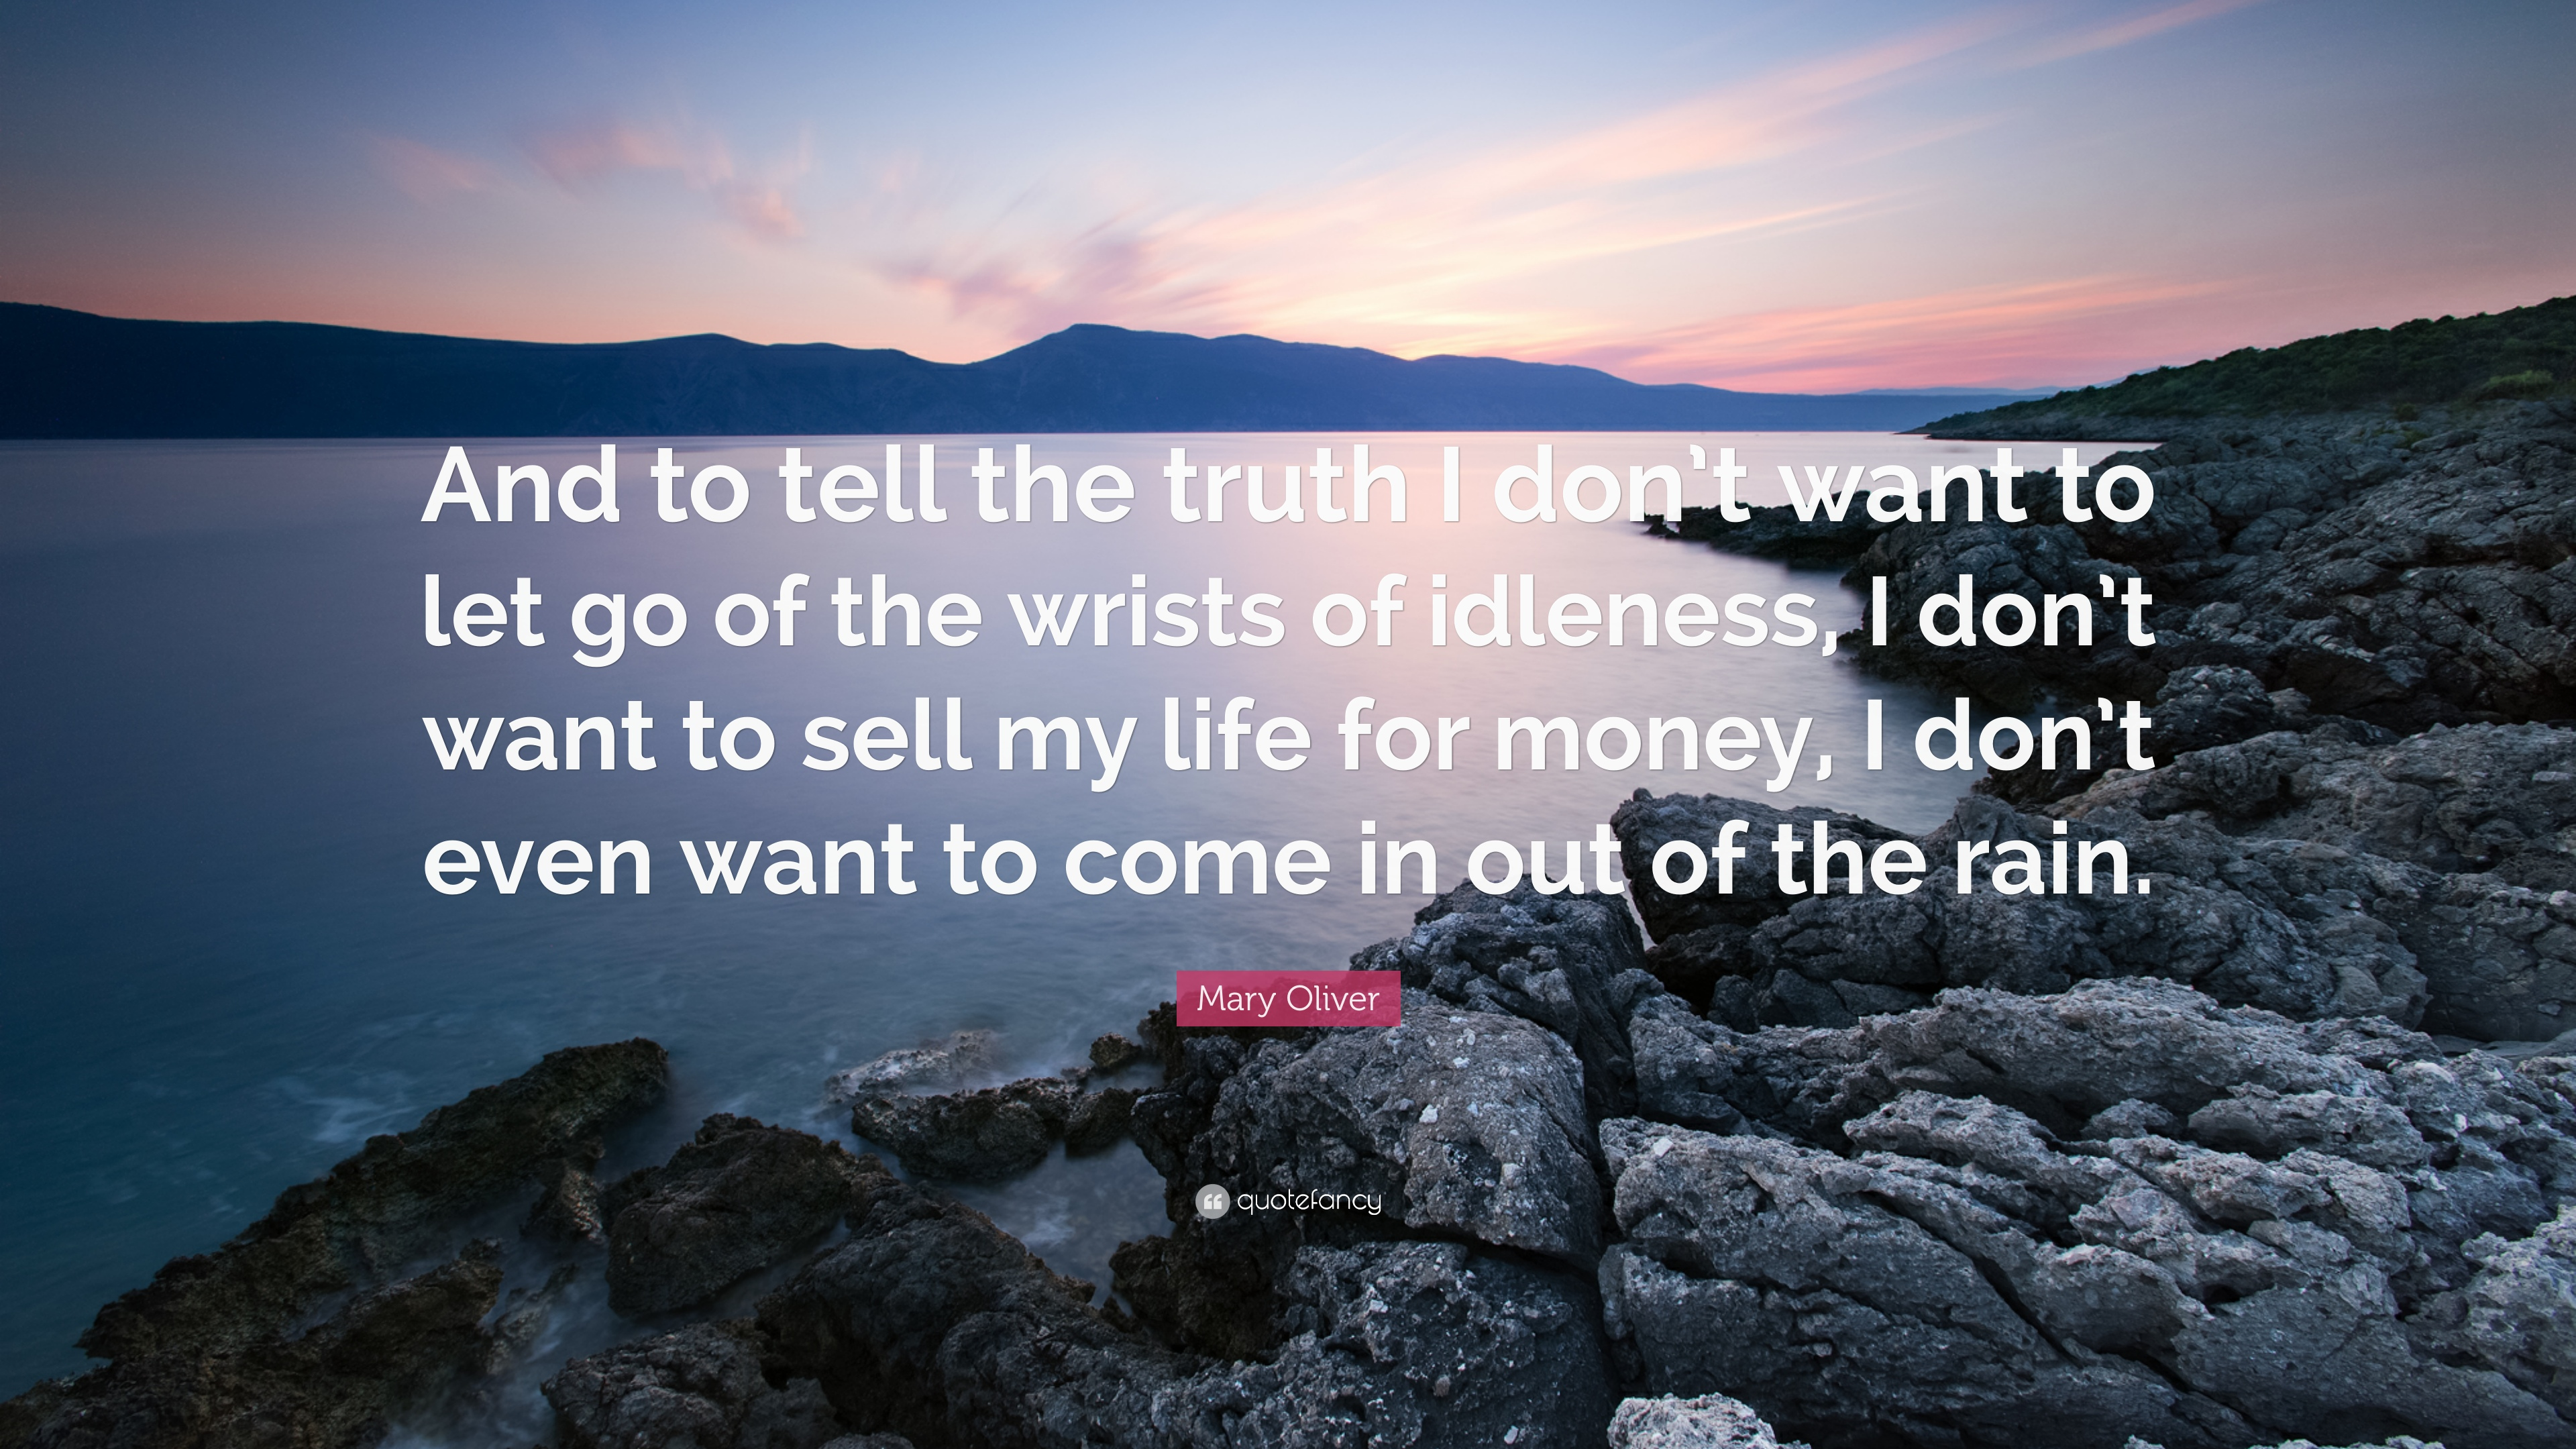 Mary Oliver Quote And To Tell The Truth I Dont Want To Let Go Of